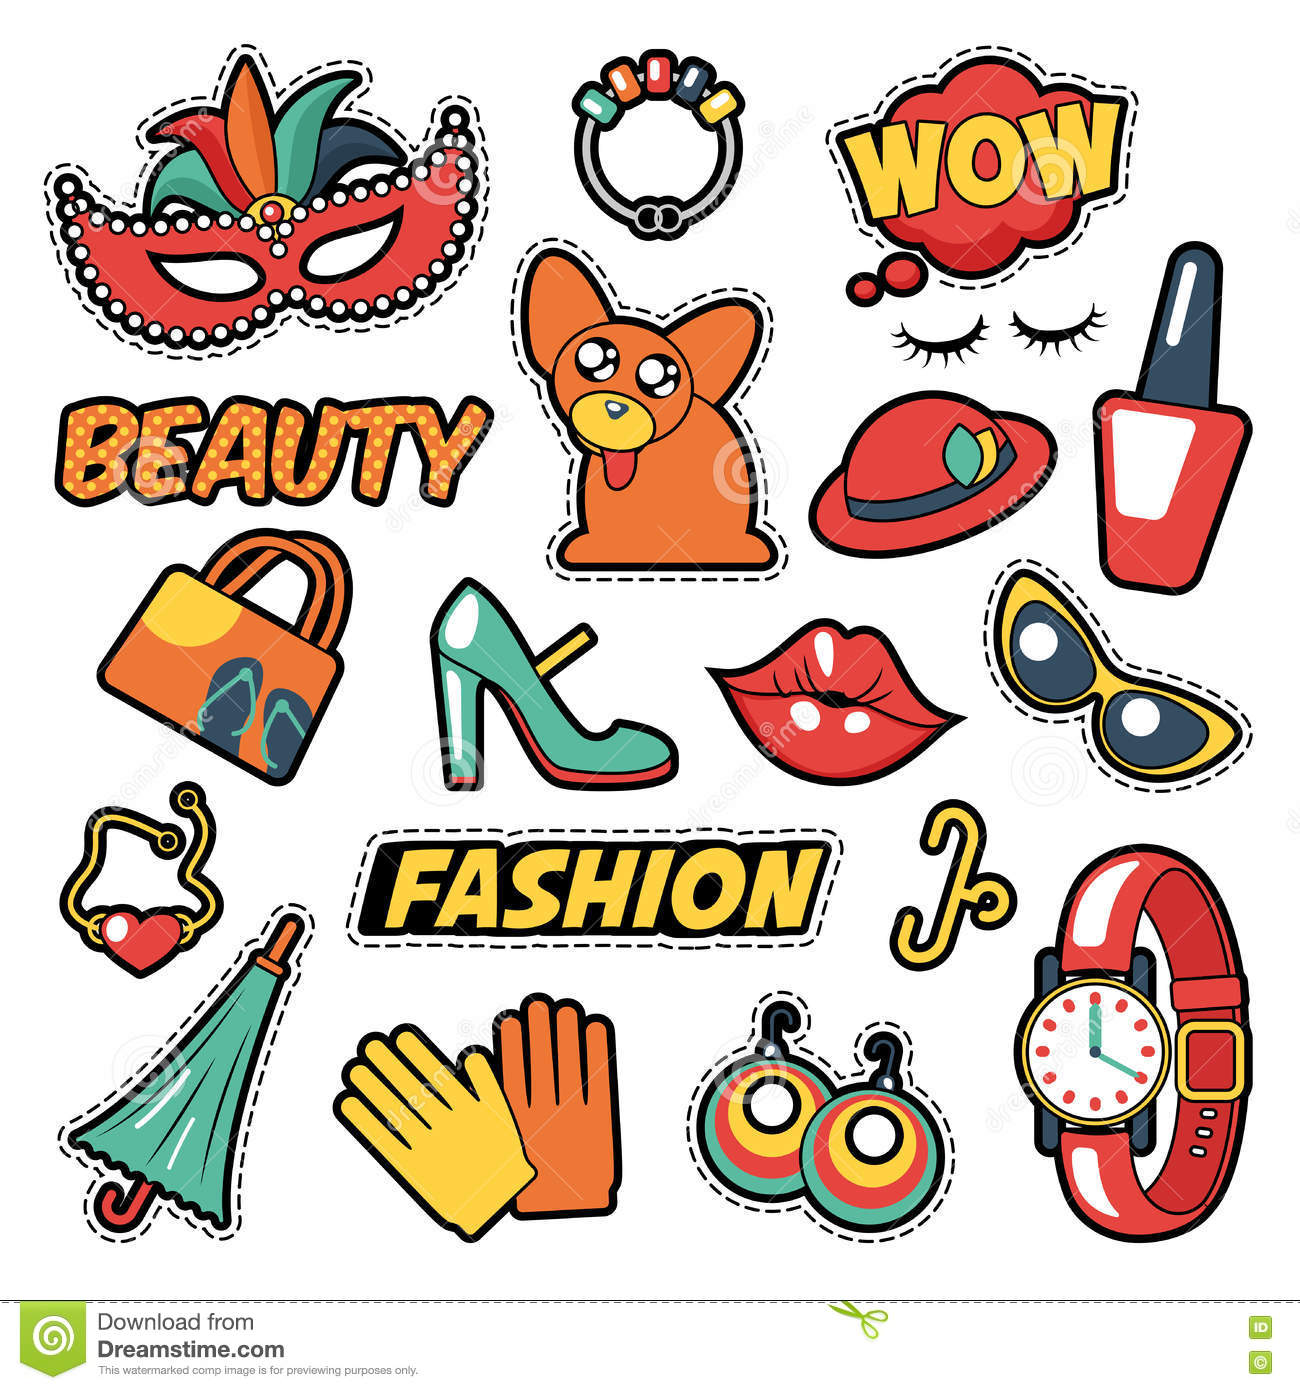 Fashion Girls Badges, Patches, Stickers - Comic Bubble, Dog, Lips and Clothes in Pop Art Comic Style